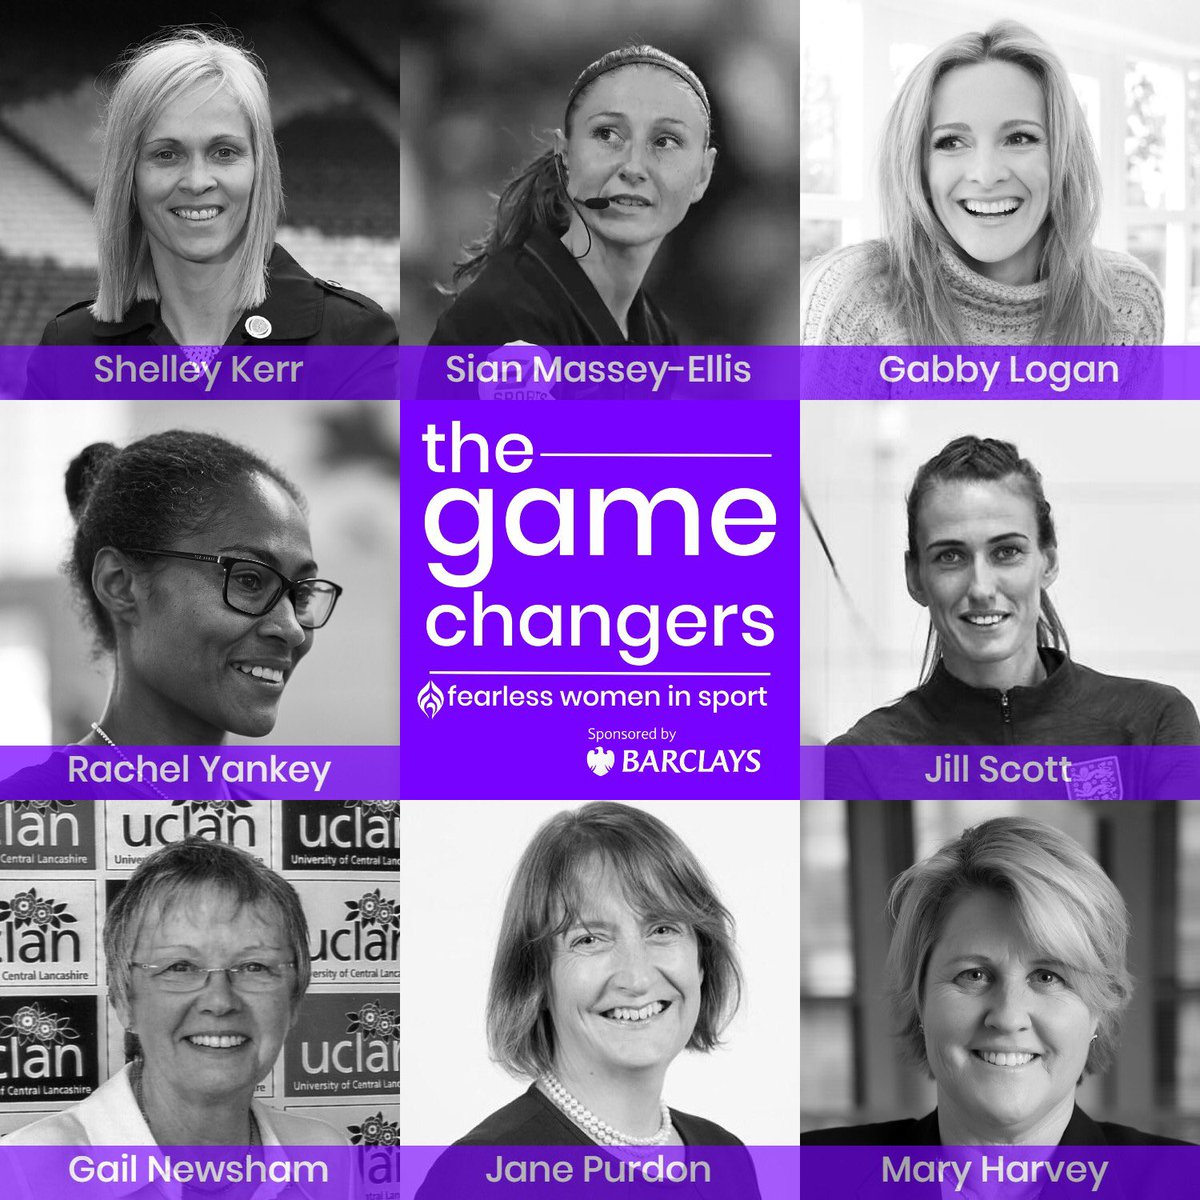 We are excited to announce our sponsorship of series 6️⃣ of @Game__Changers_ podcast, featuring 8 'fearless women in football' who discuss knocking down barriers for women & girls. Episode 1 drops Nov 3rd 🙌   👉 Visit https://t.co/GQrhywKkg2 for the trailer   It's #AllToPlayFor https://t.co/3YriLXi77m